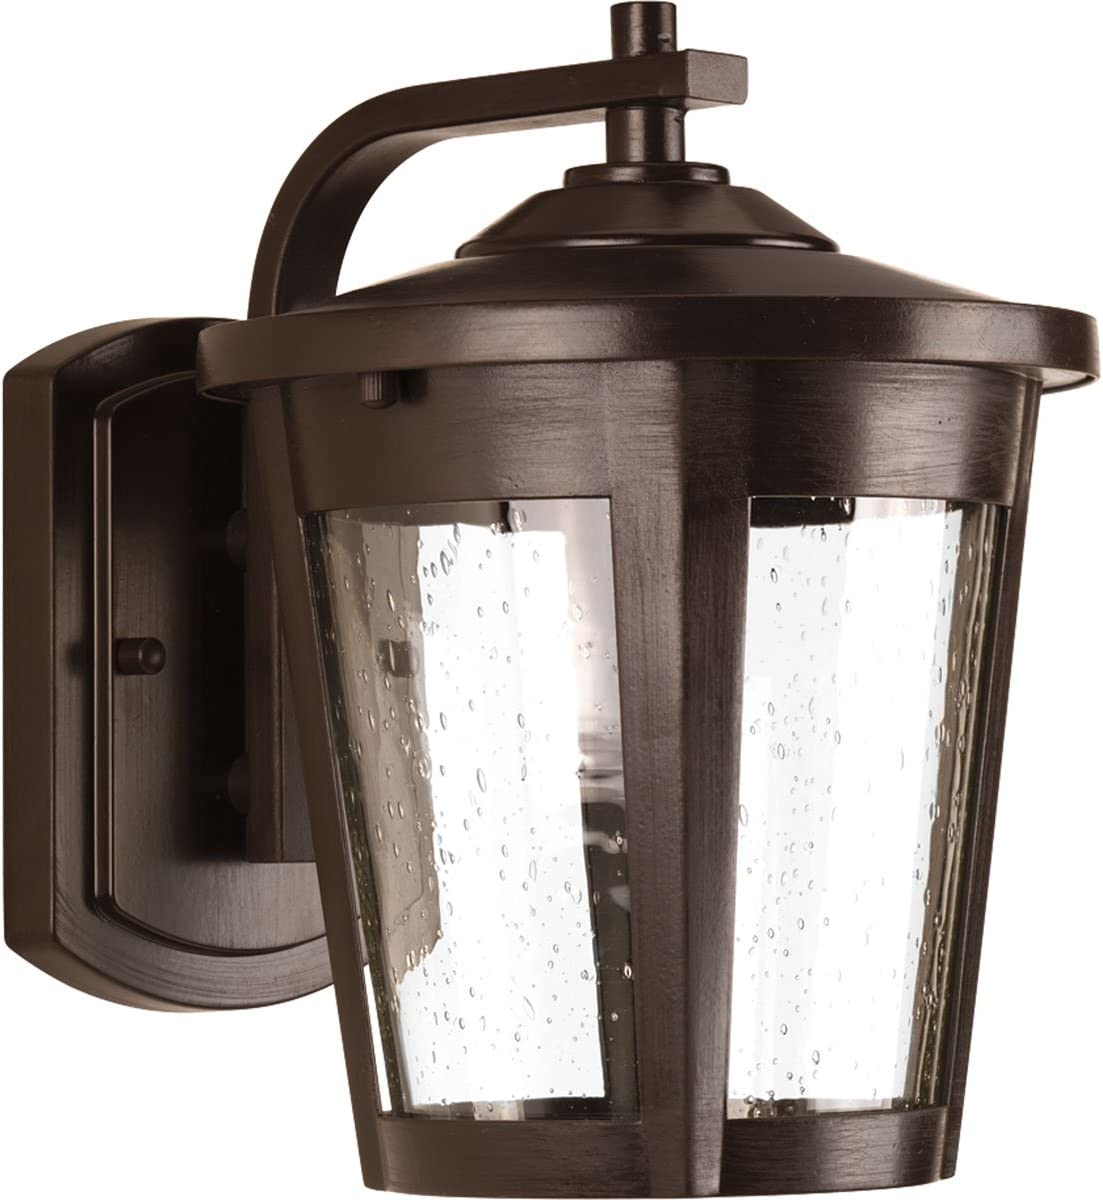 Progress Lighting P6078-2030K9 Transitional One Light Wall Lantern from East Haven Led Collection Dark Finish, Antique Bronze